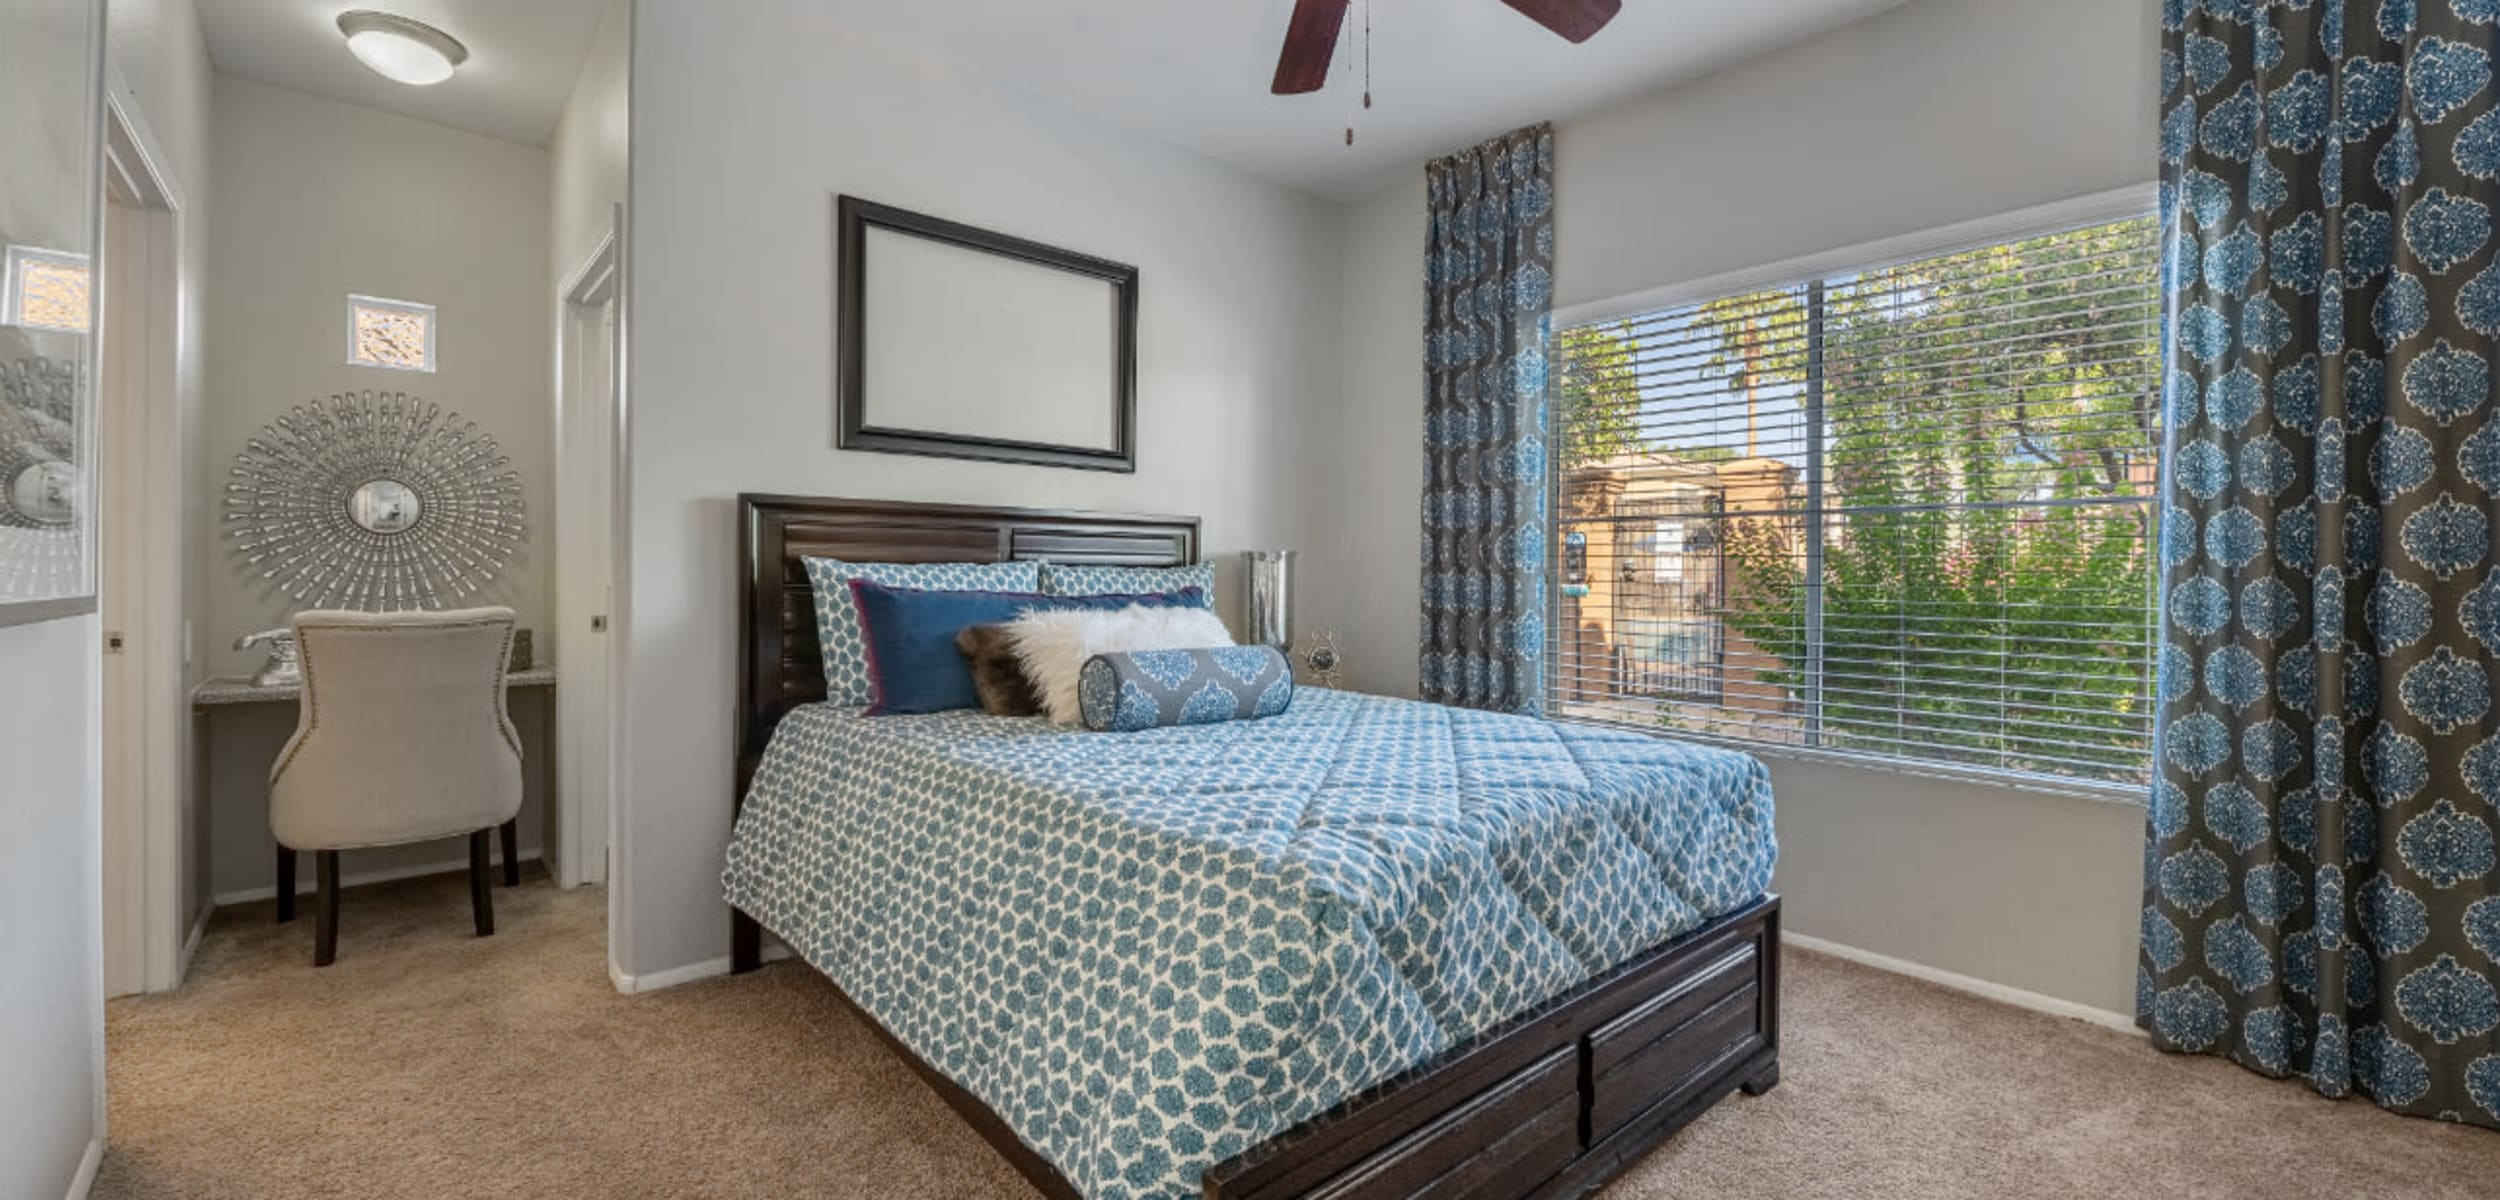 Bedroom with a large window and seating area at Alante at the Islands in Chandler, Arizona